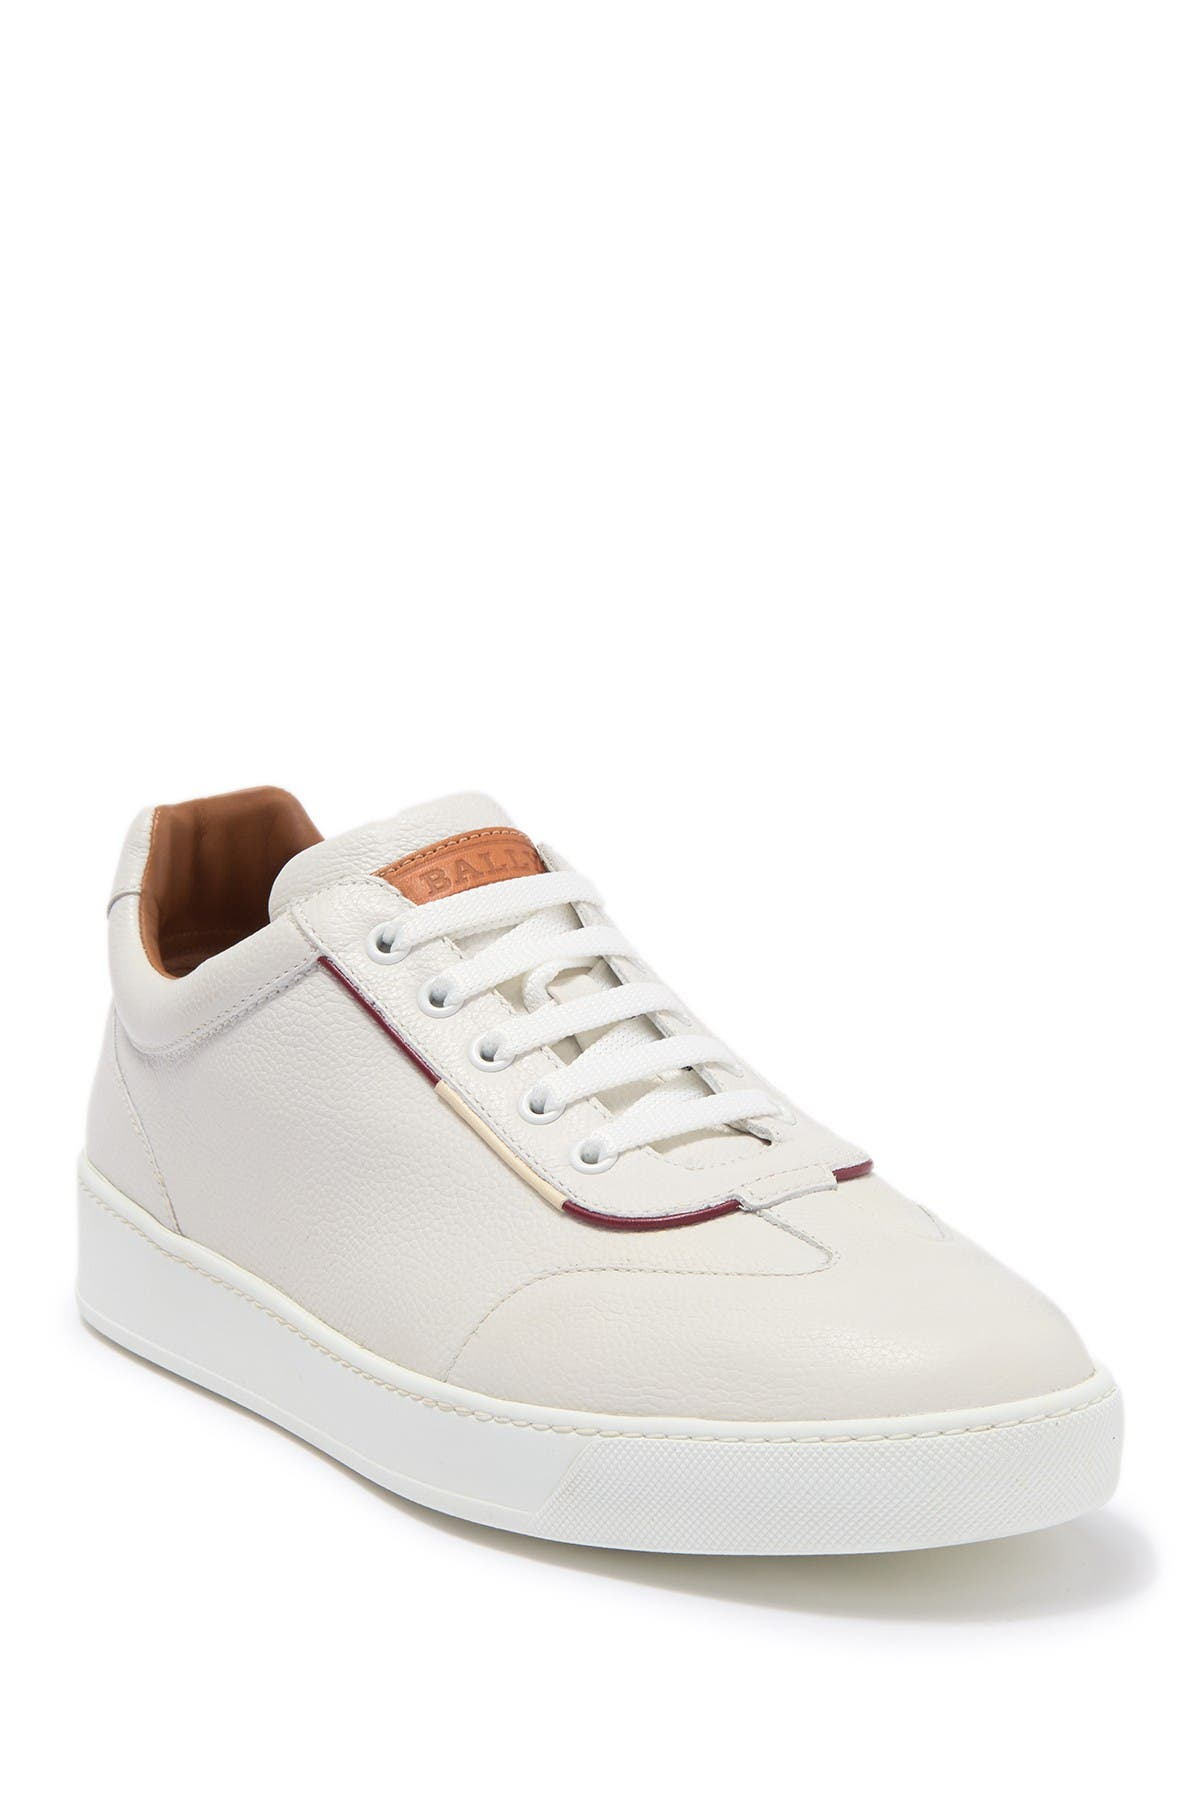 Image of BALLY Baxley Sneaker